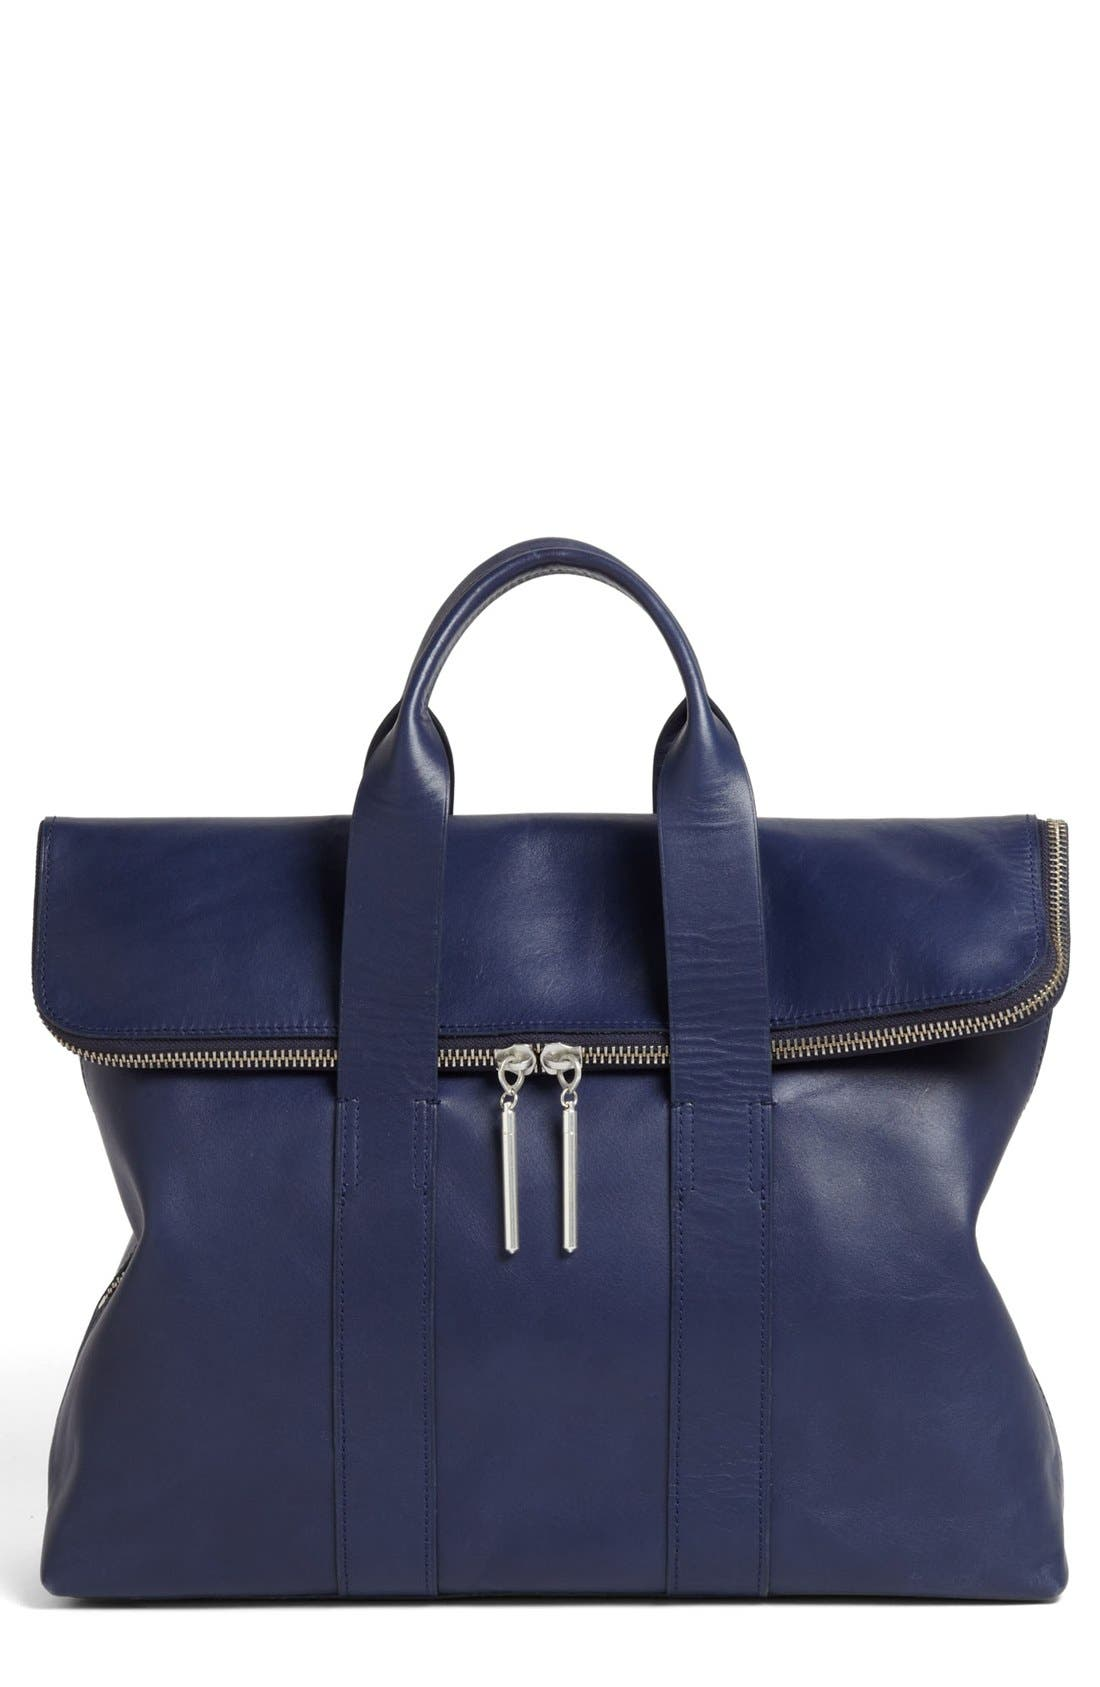 '31 HOUR' LEATHER TOTE - BLUE